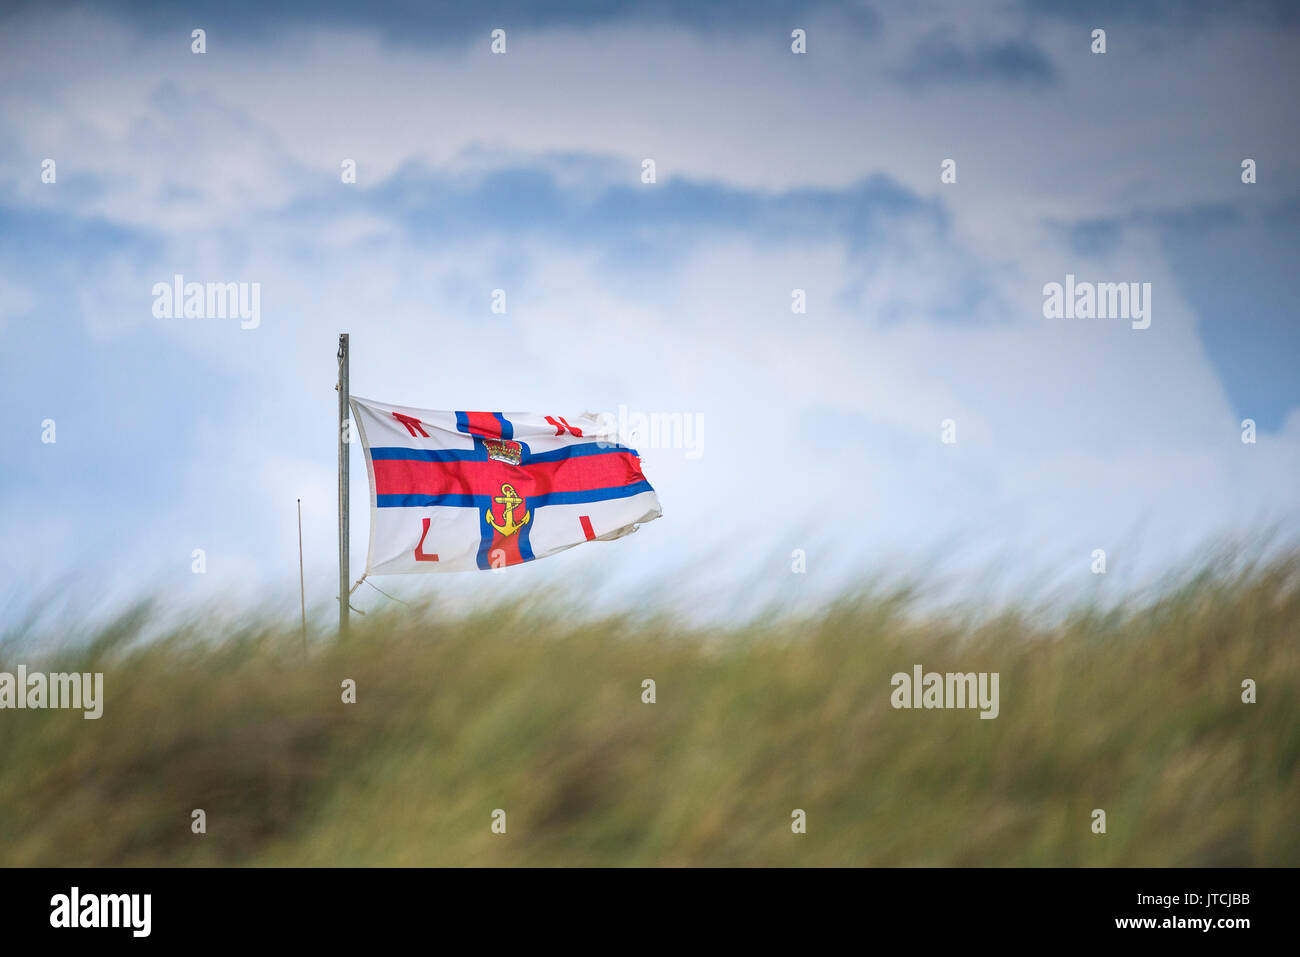 A RNLI flag fluttering in windy conditions. - Stock Image